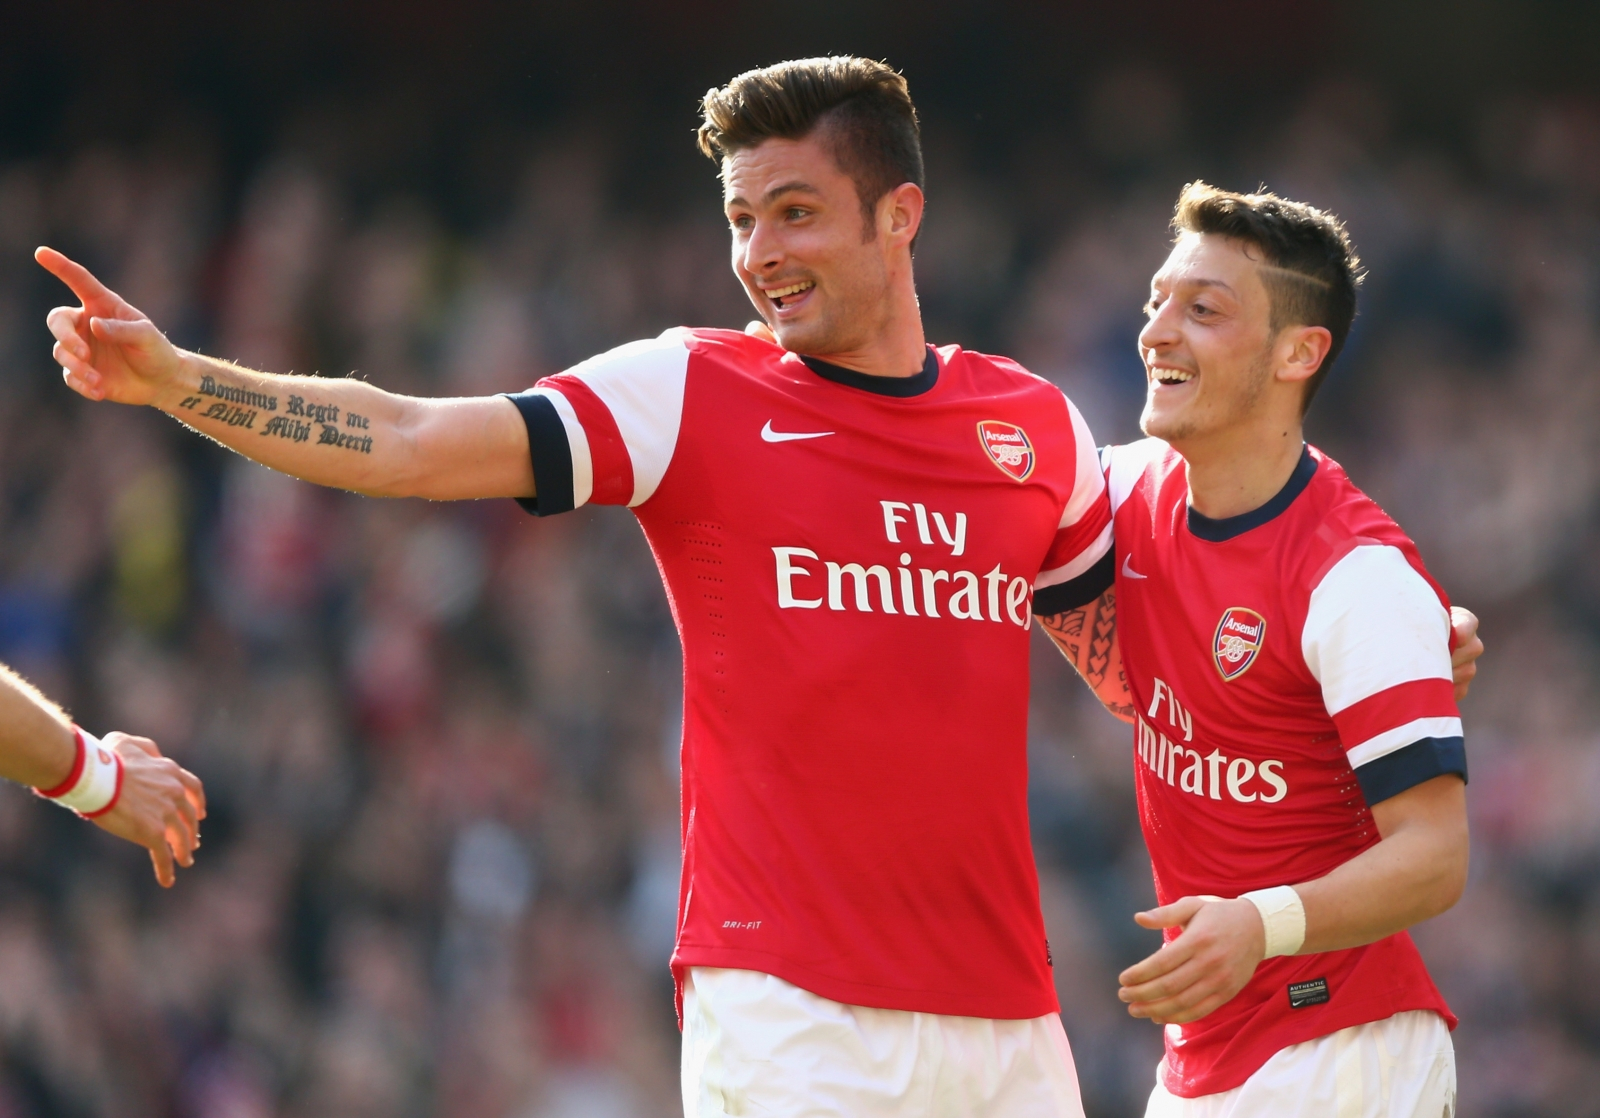 arsene-wenger-insists-he-wants-to-keep-giroud-and-ozil-at-arsenal